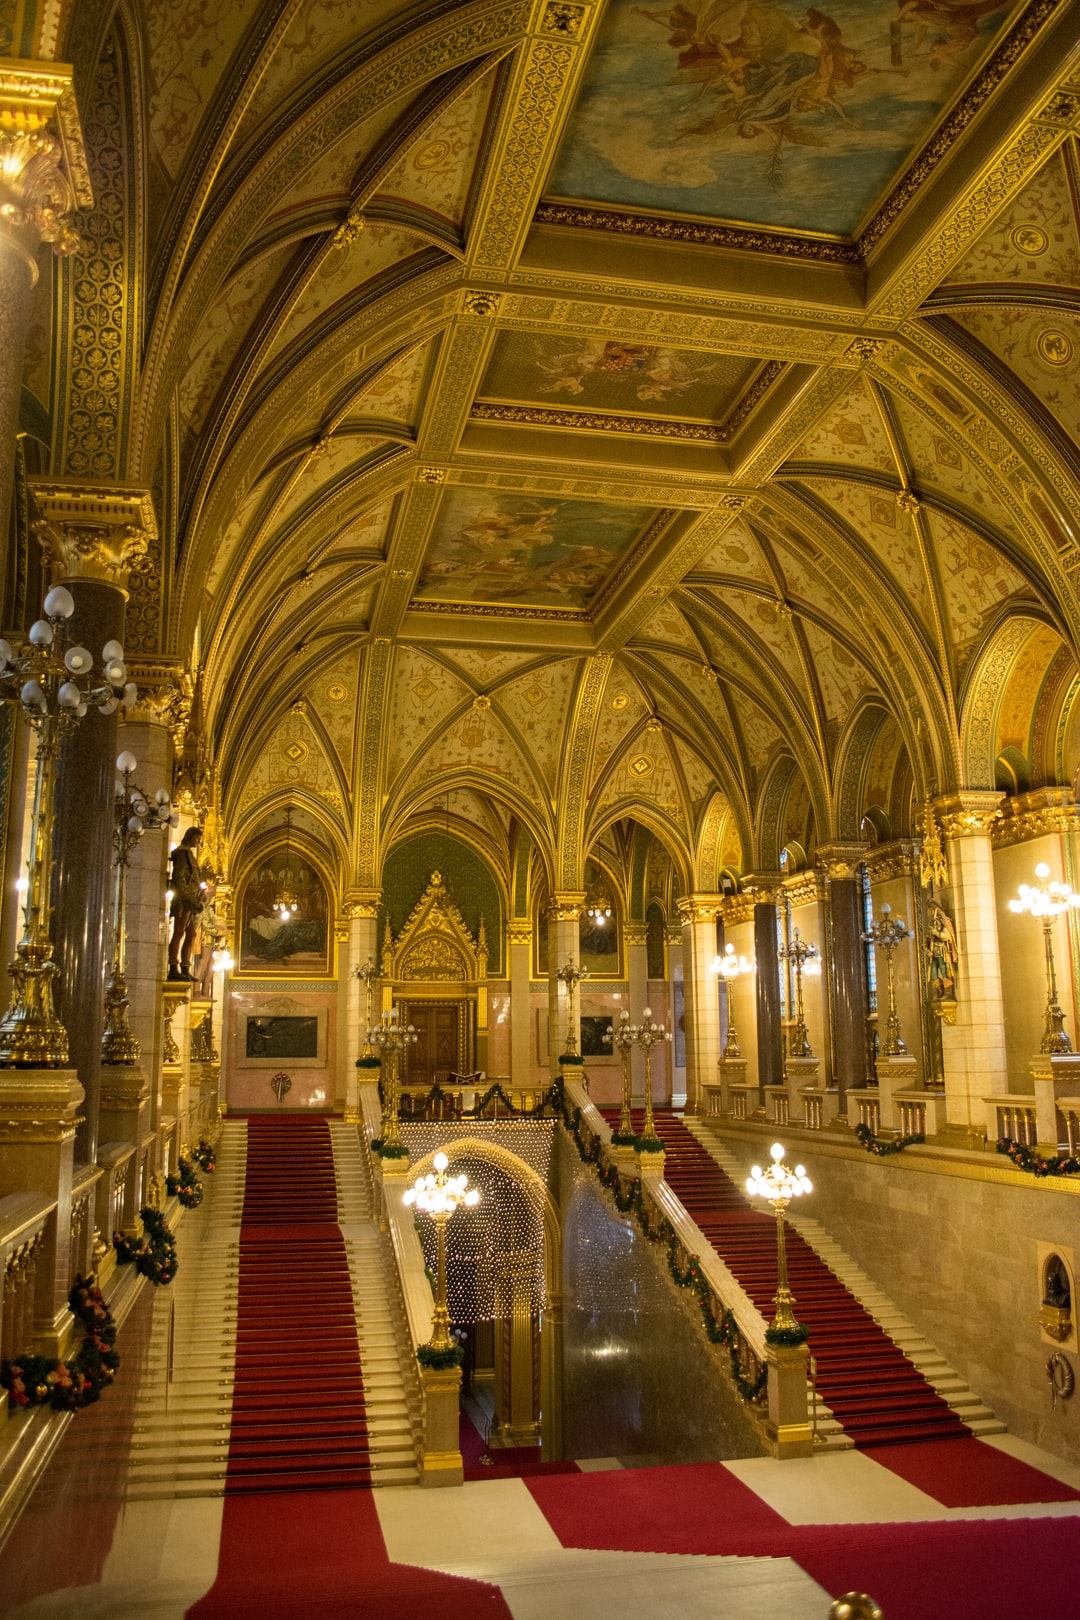 The golden staircase in the Hungarian parliament building in Budapest. This staircase is actually the main staircase of the 268m long building located right at the Danube.